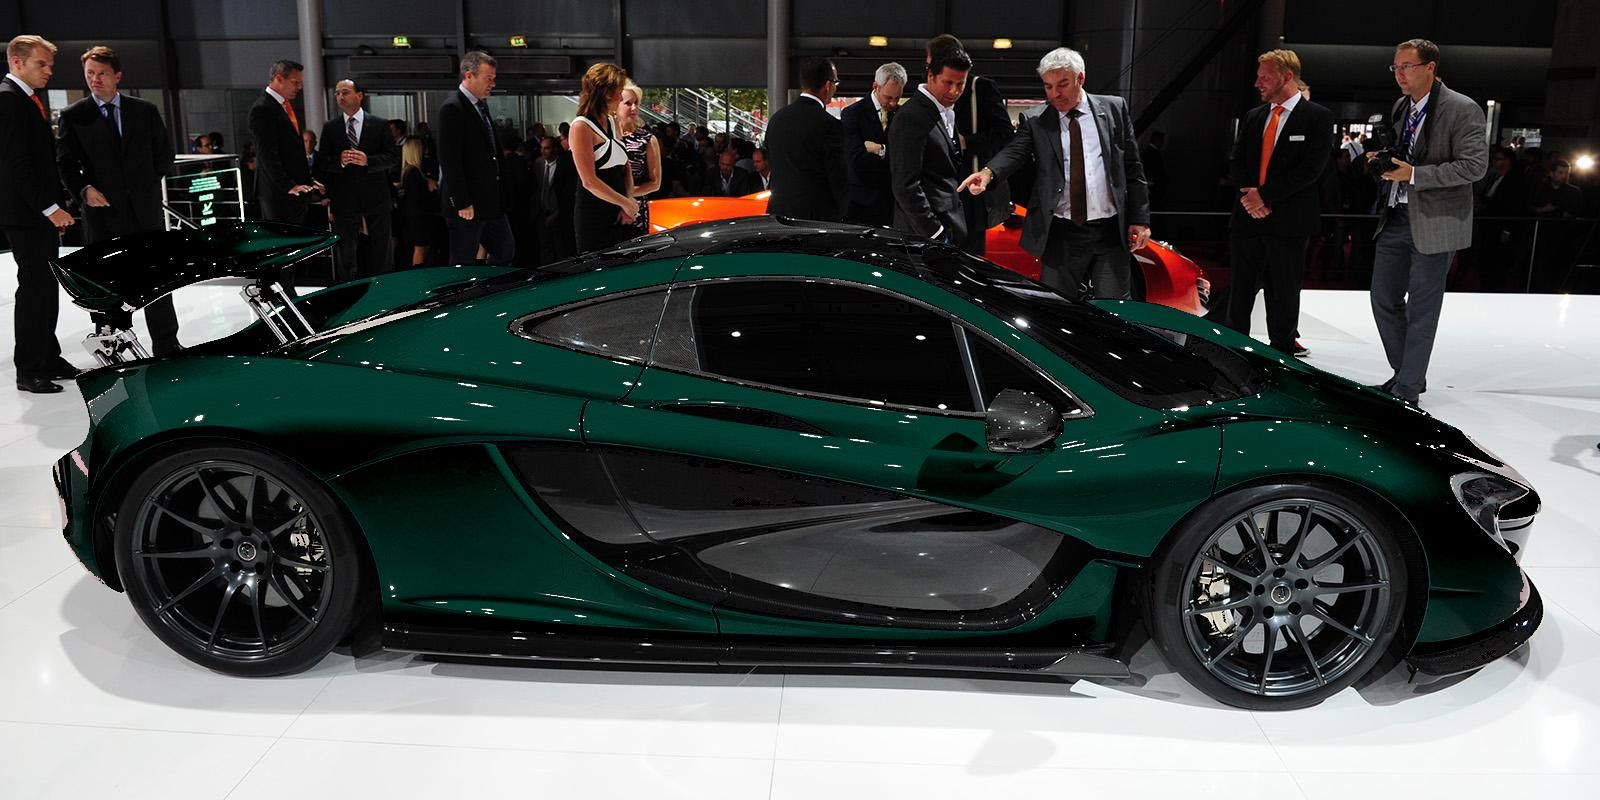 Pretty Sick P1 Car Painting Car Paint Colors Green Car